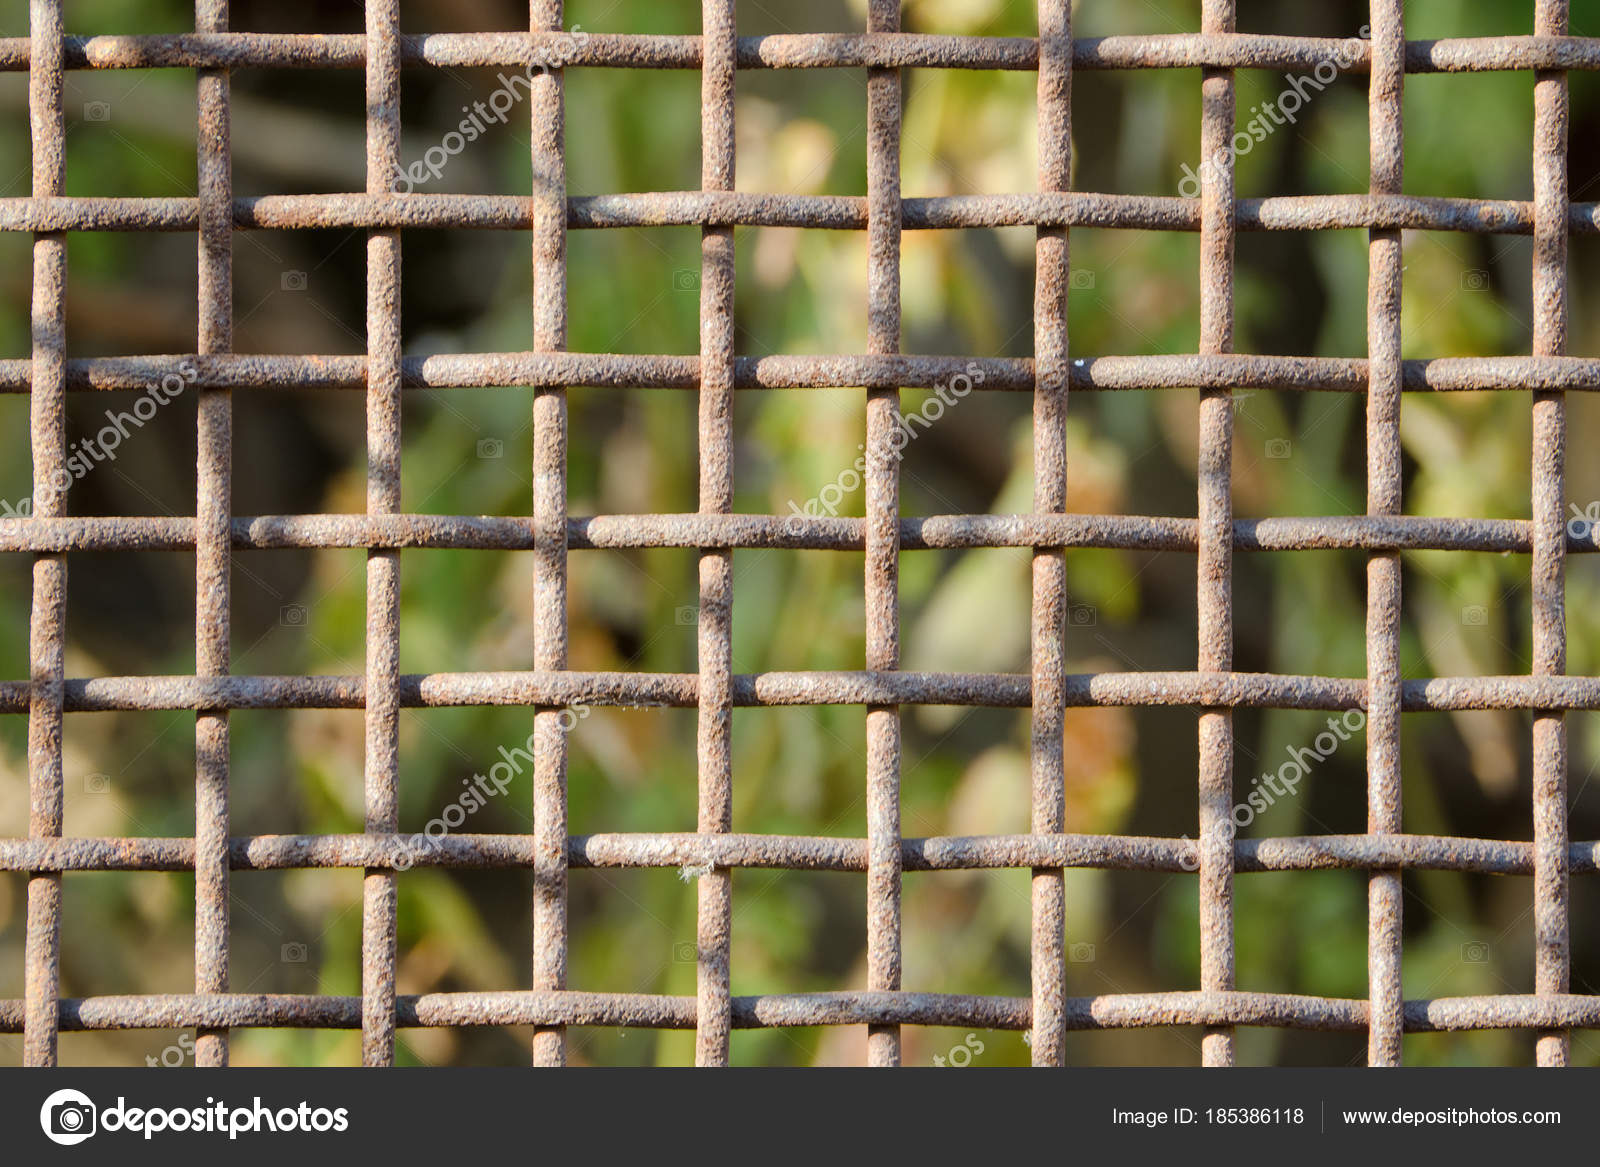 rusty cage download